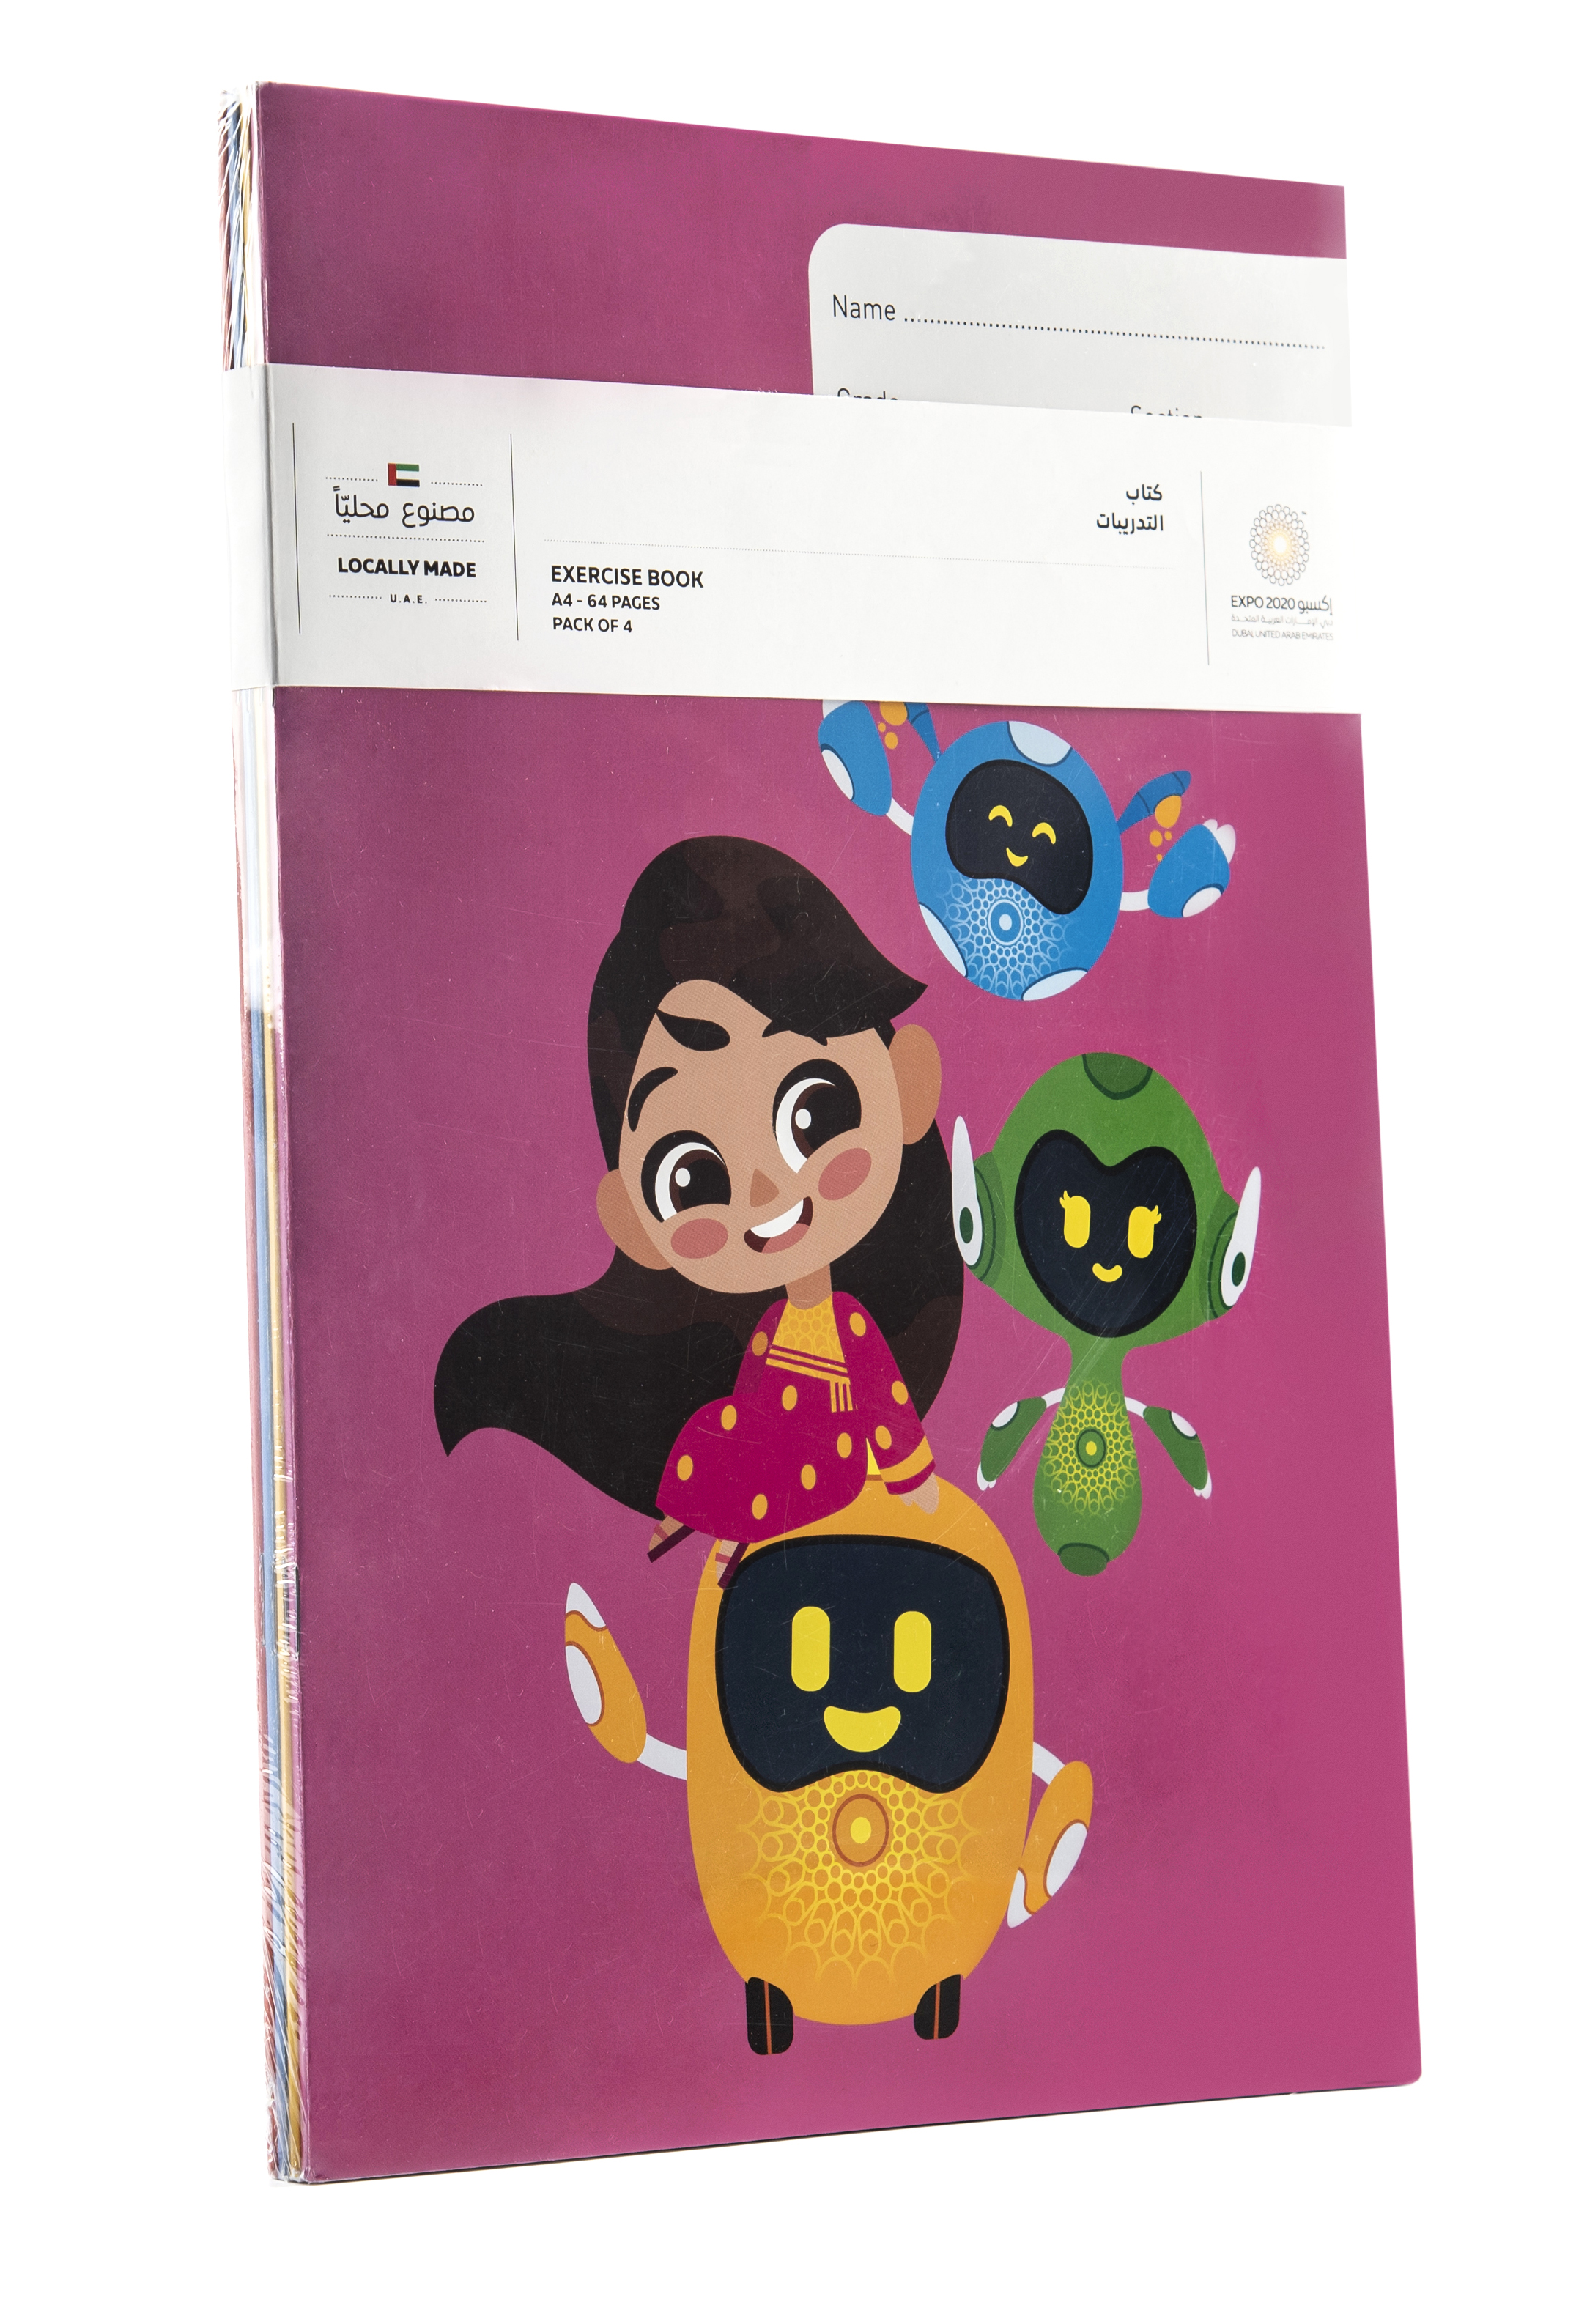 Expo 2020 Dubai Mascots A4 Exercise Books Pack of 4 - 64 Pages